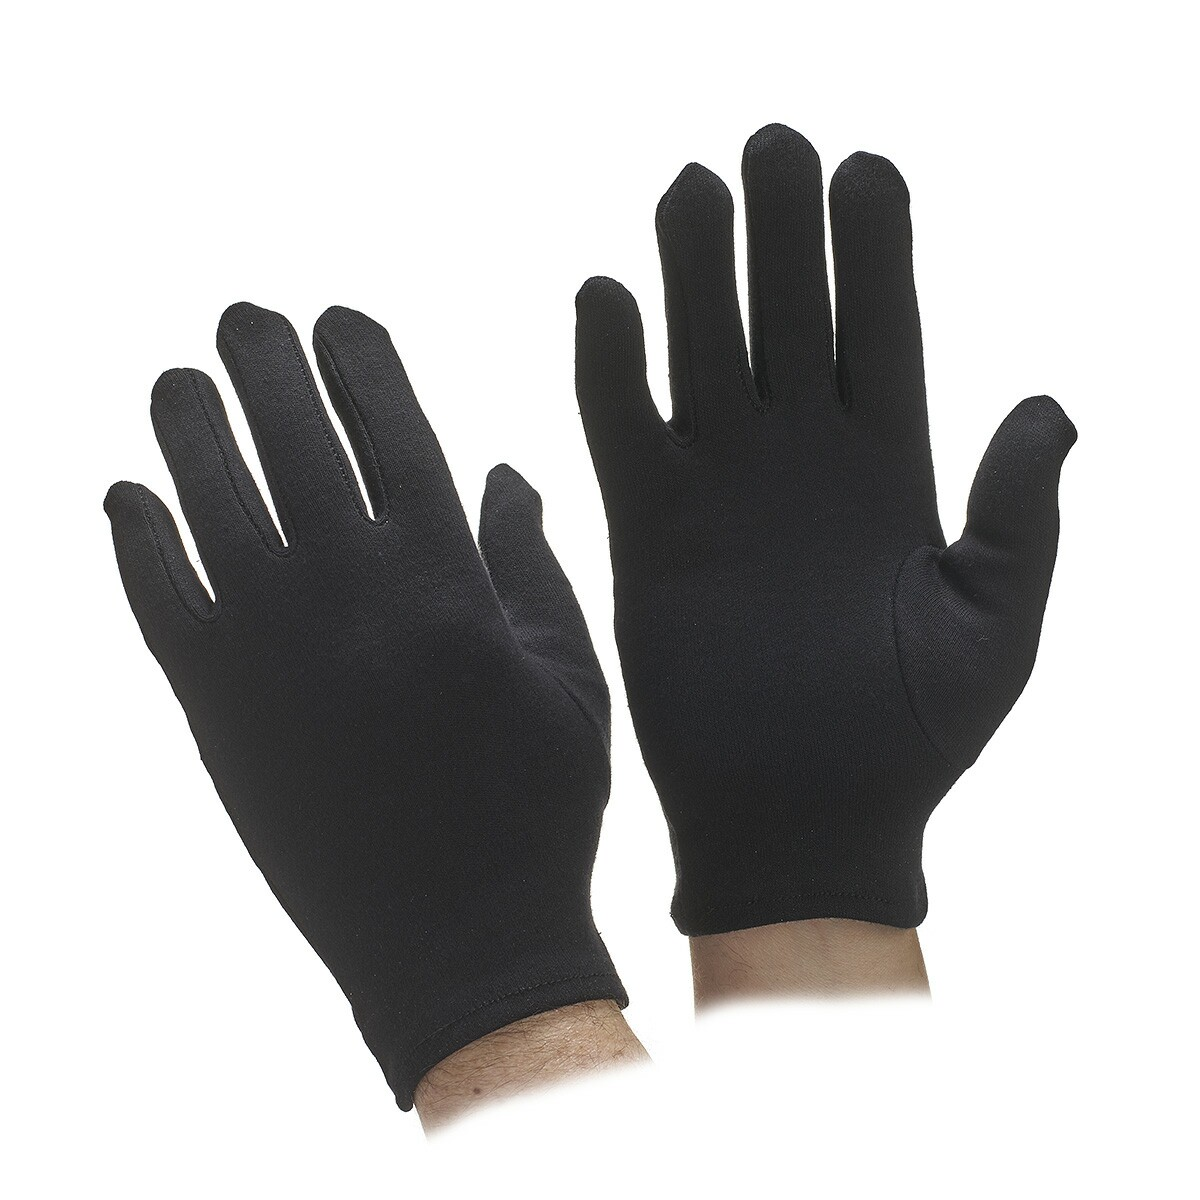 Black gloves online - Go Standard Black Cotton Parade Gloves